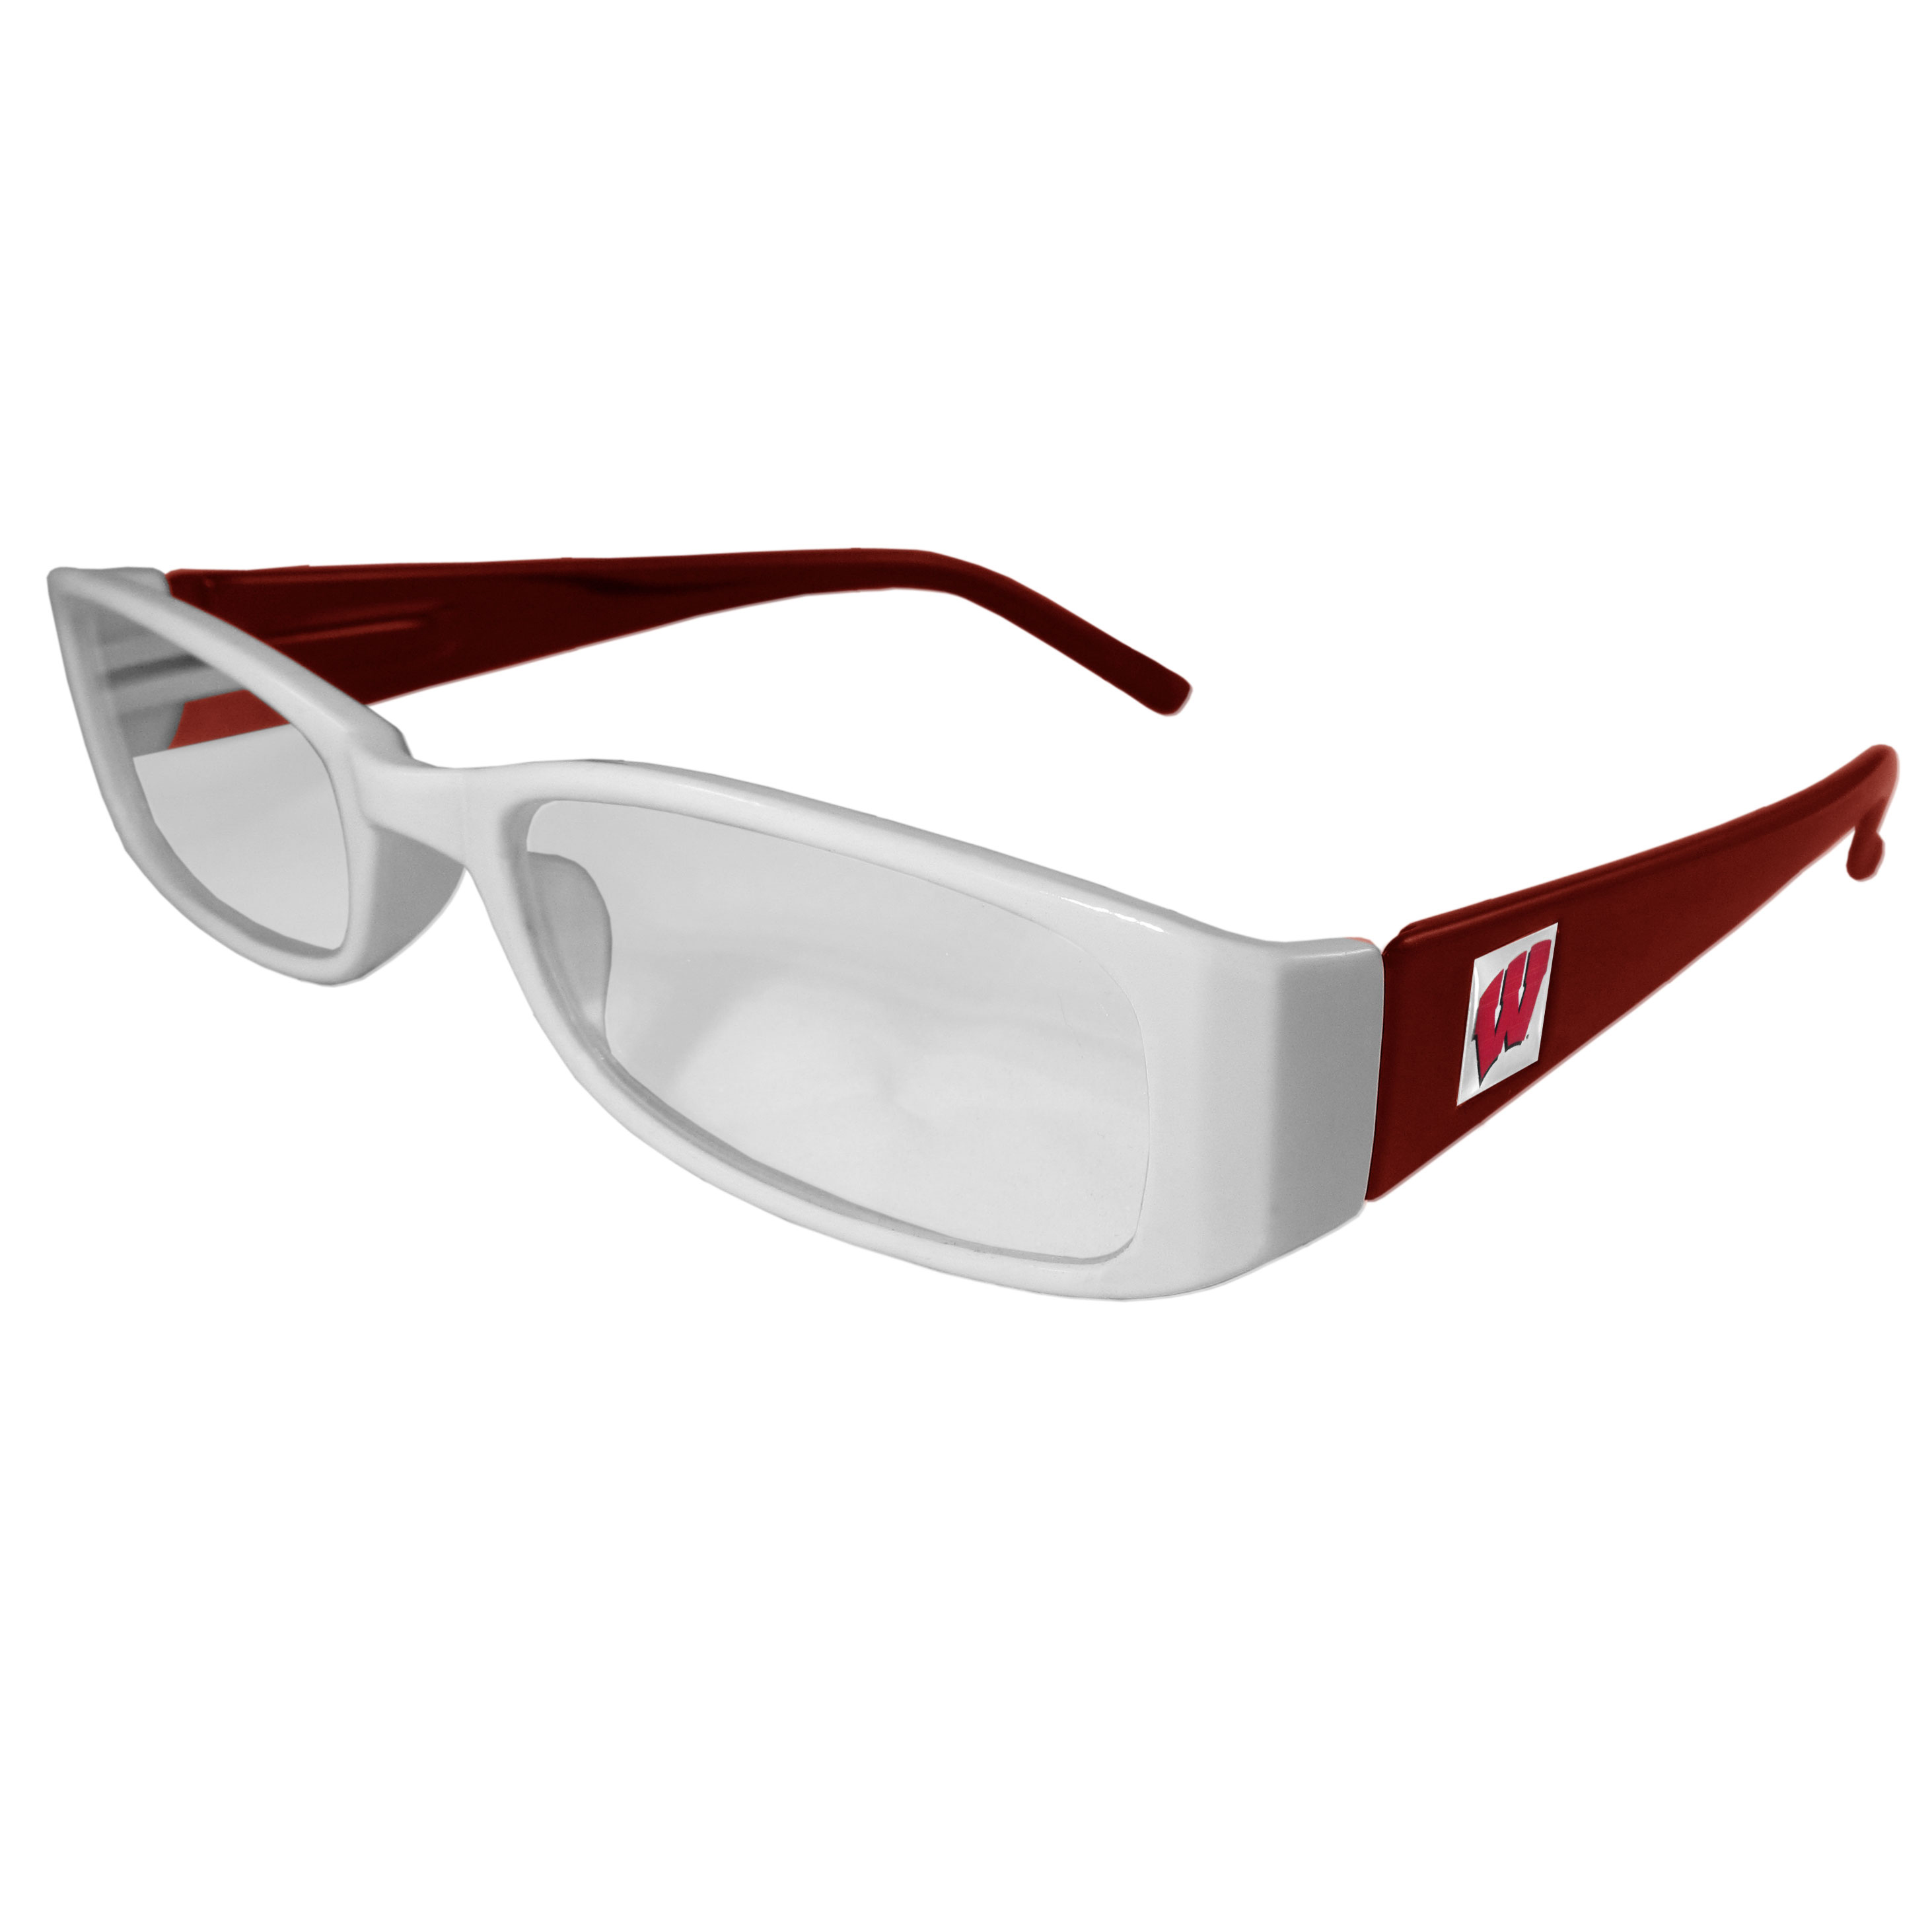 Wisconsin Badgers Reading Glasses +2.50 - Our Wisconsin Badgers reading glasses are 5.25 inches wide and feature the team logo on each arm. Magnification Power 2.50